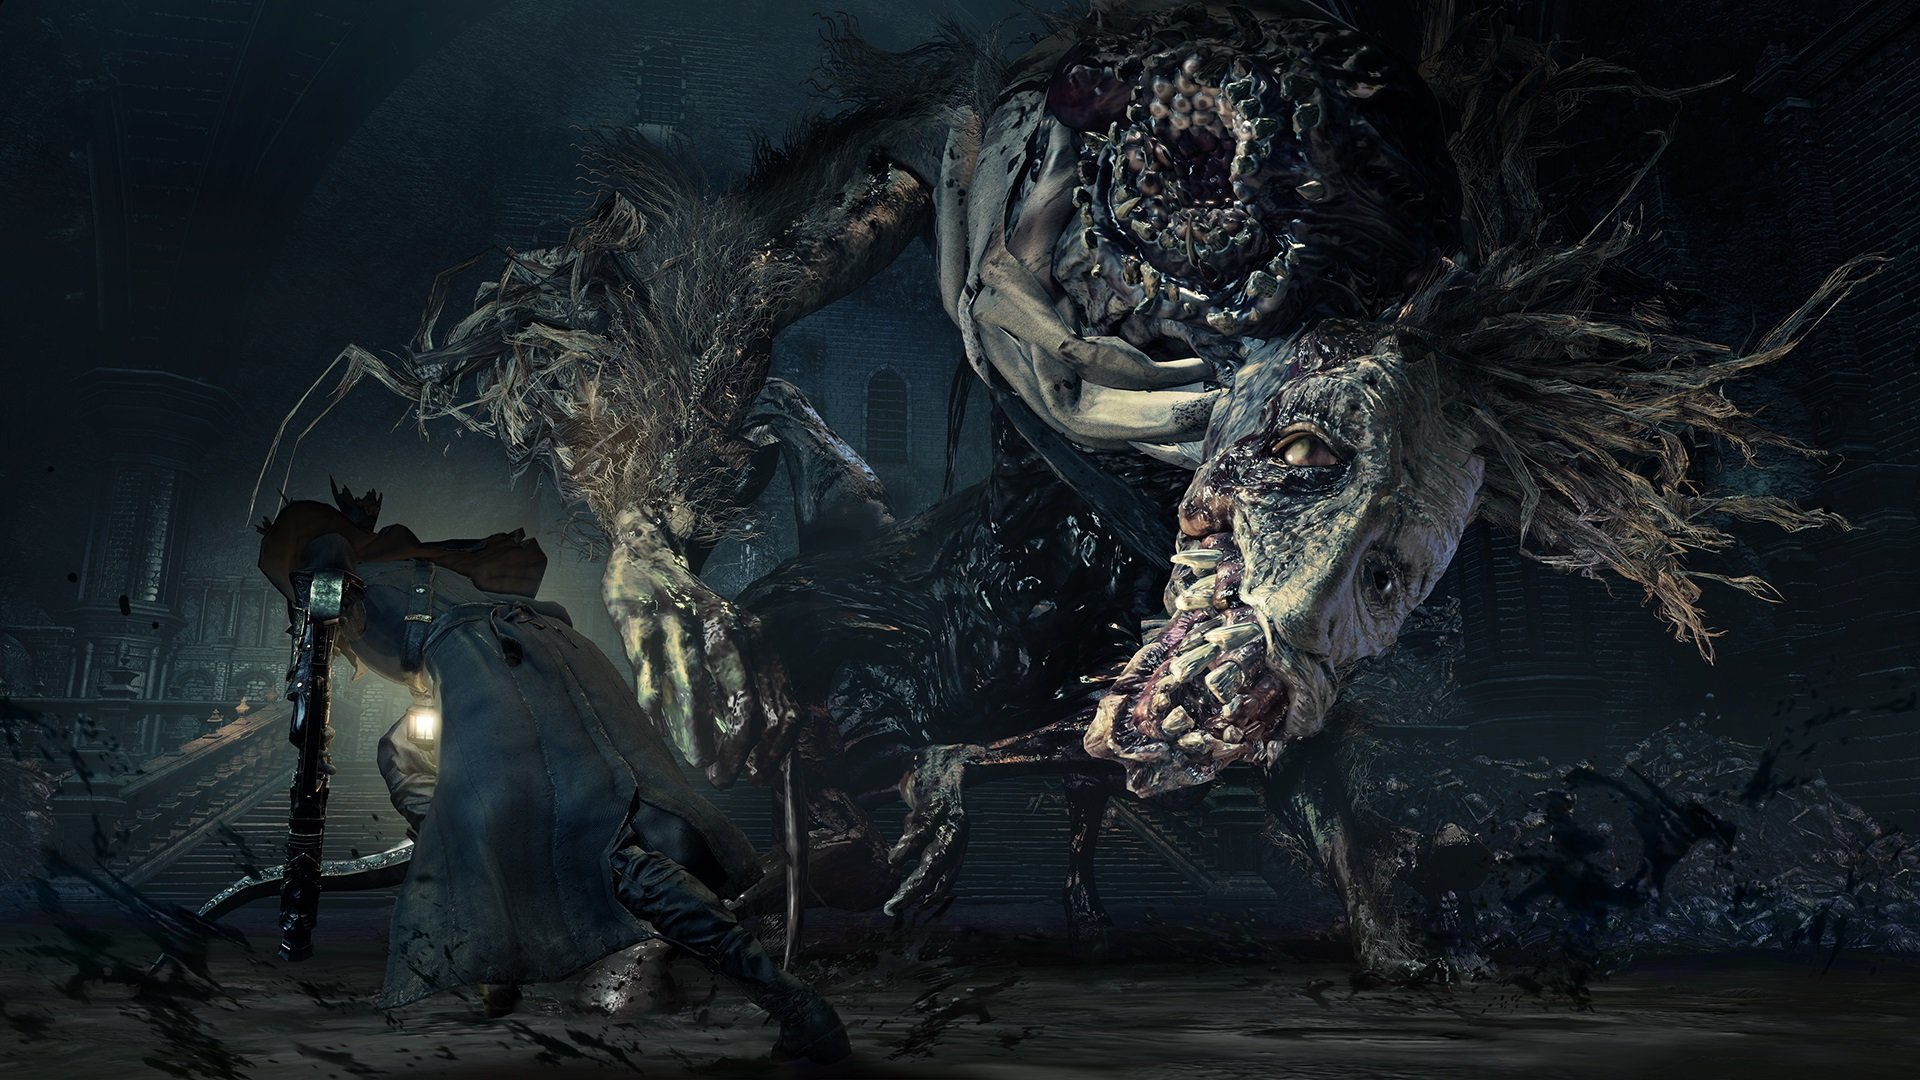 Bloodborne is one of the greatest gothic horror games ever made.